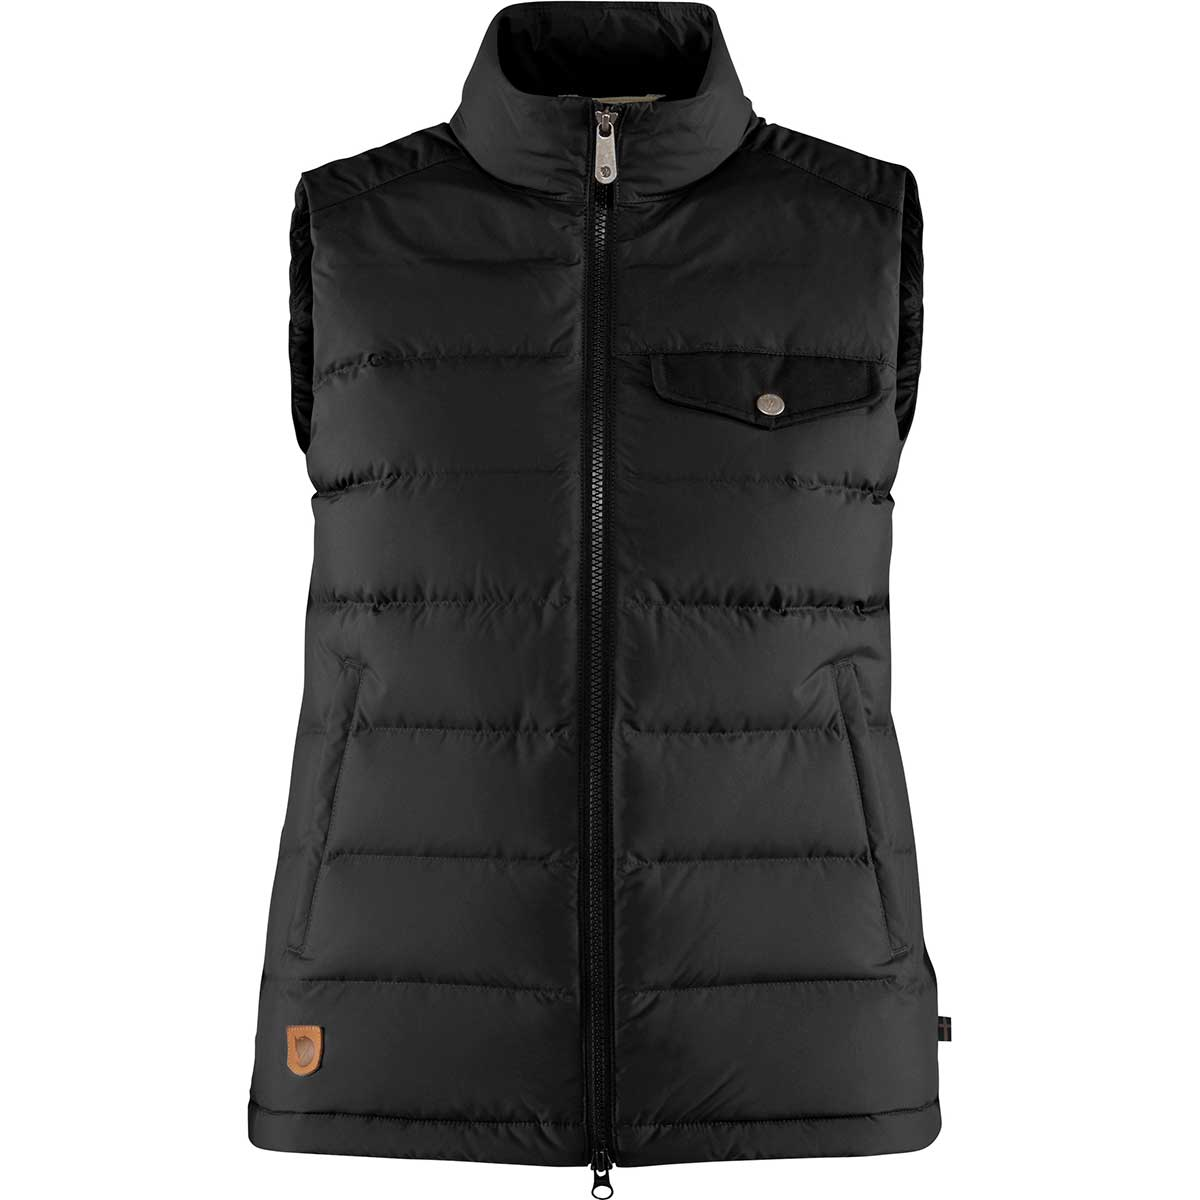 Fjallraven women's Greenland Down Liner Vest in Black front view